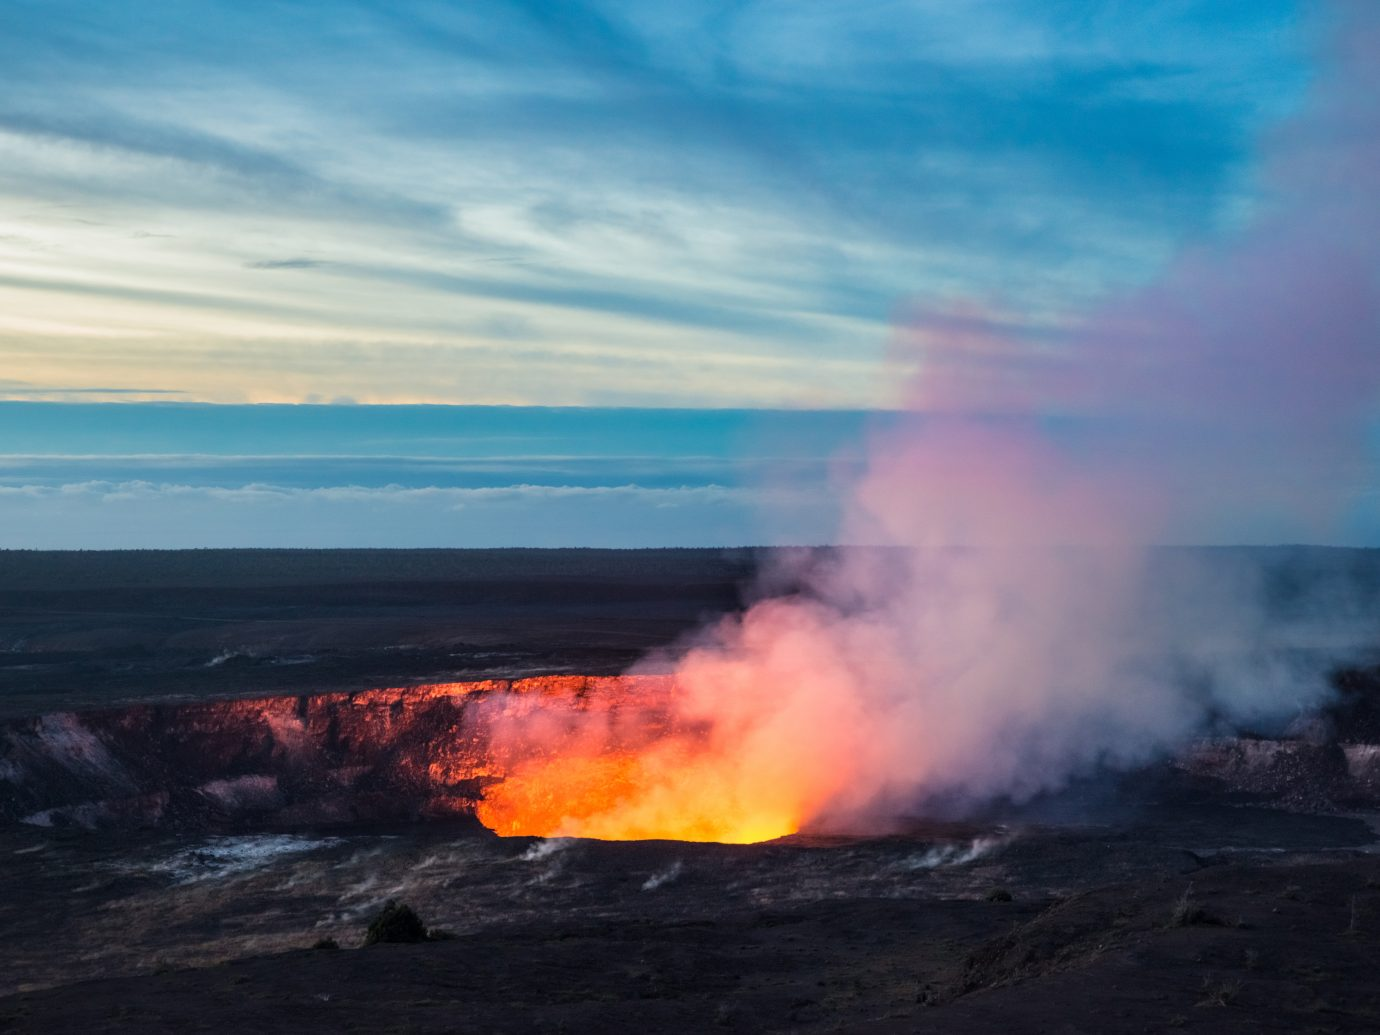 Fire and steam erupting from Kilauea Crater in Hawaii